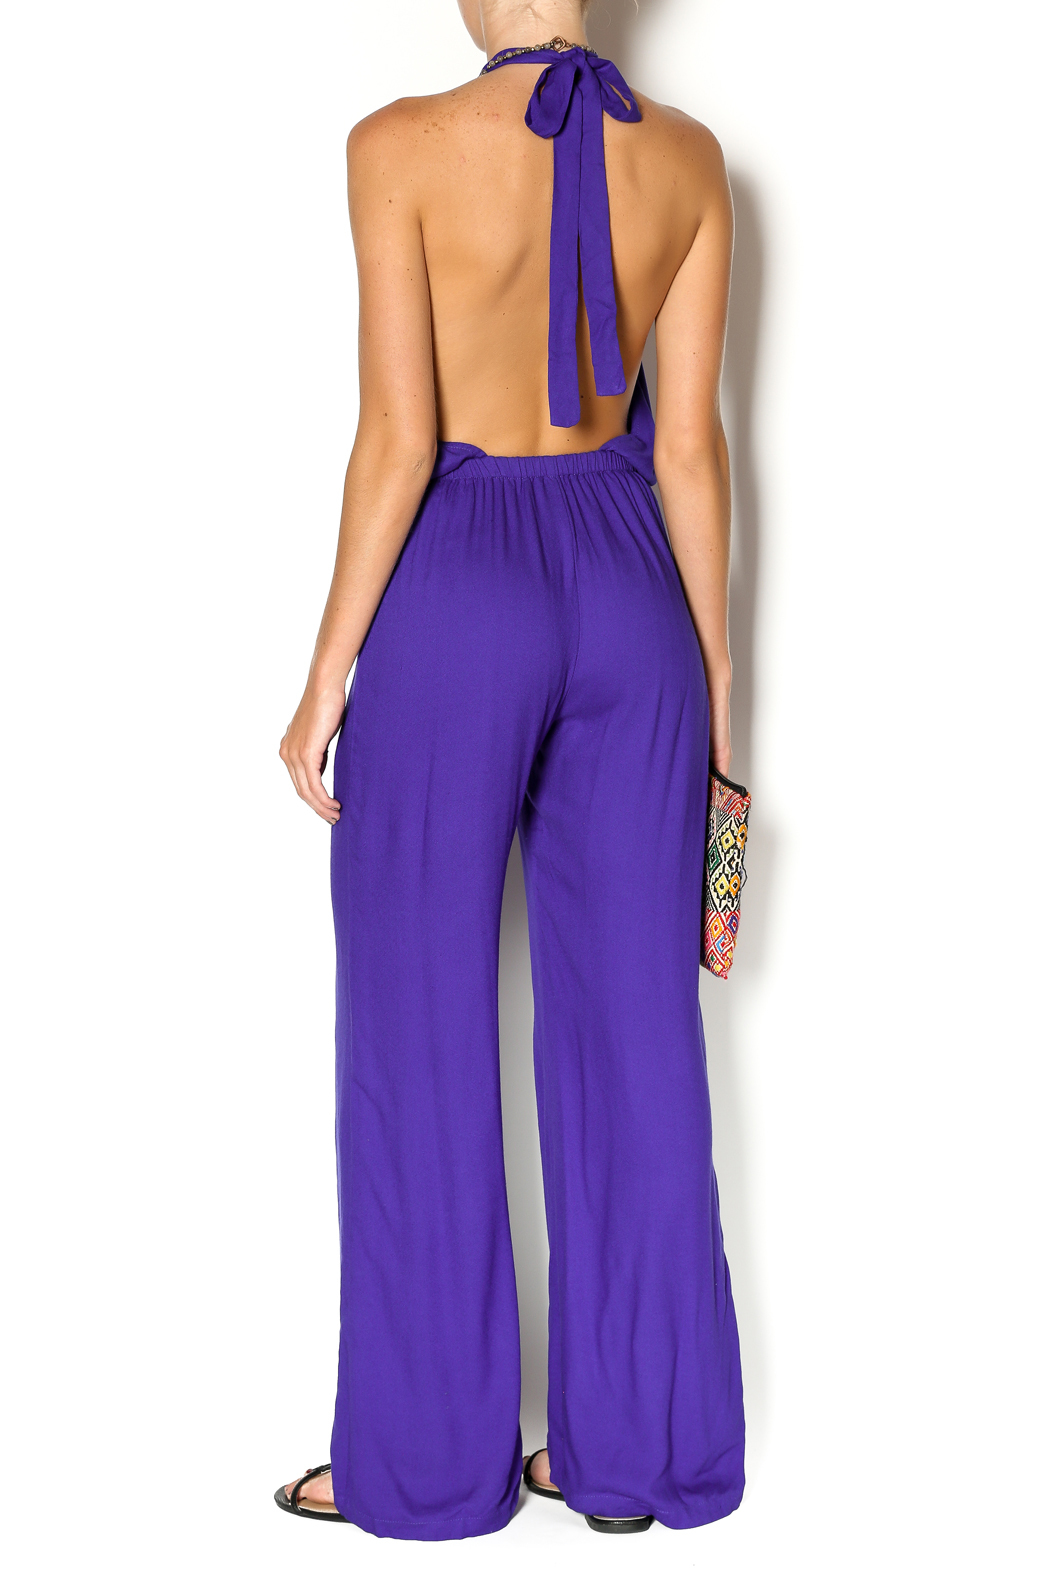 Indah Purple Jumpsuit From Texas By Confections Boutique